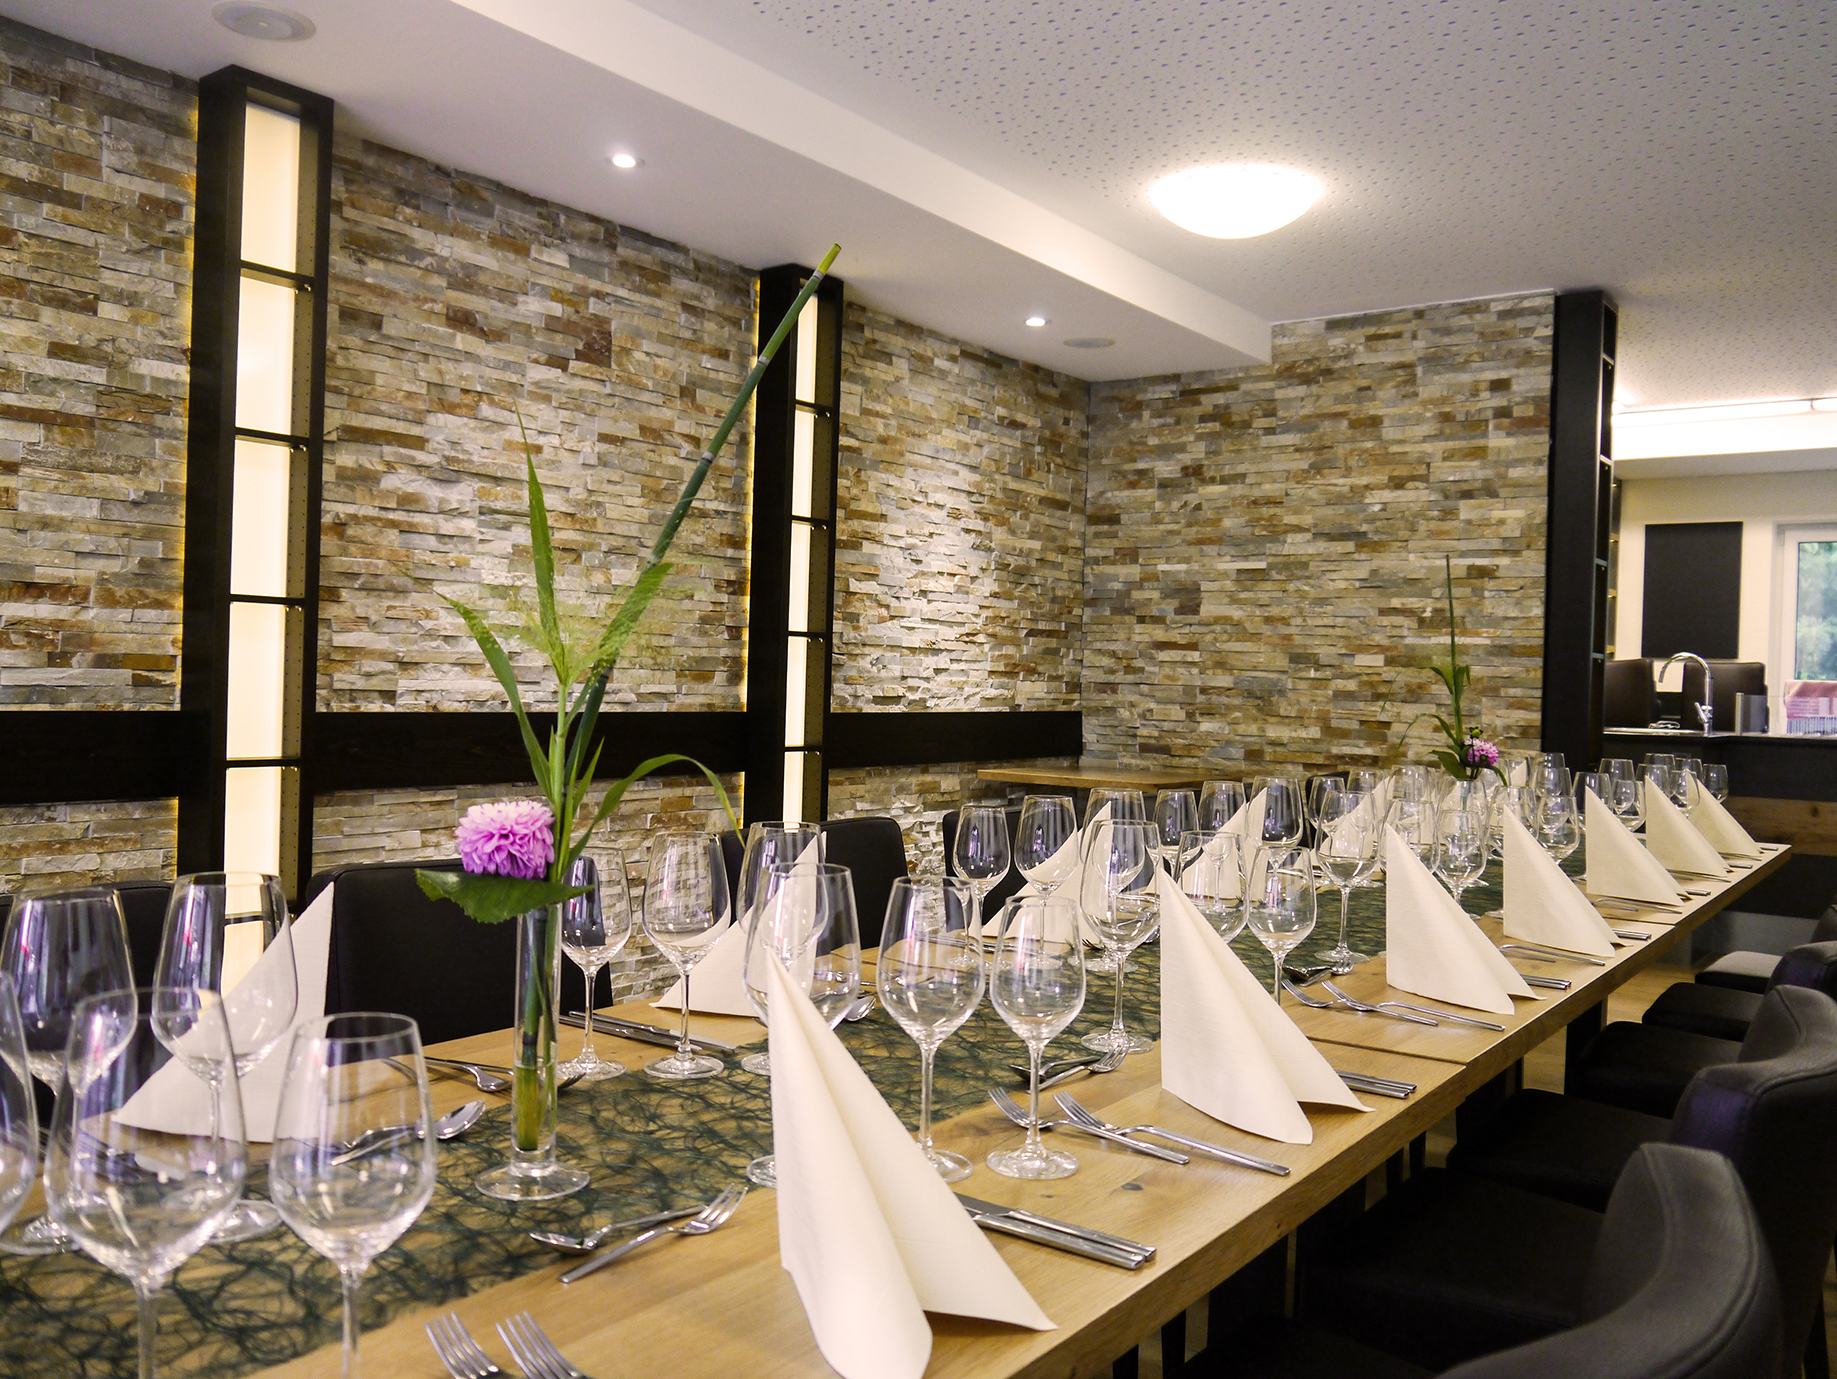 weinstube, table row, company event, wine-glasses, cutlery, flower